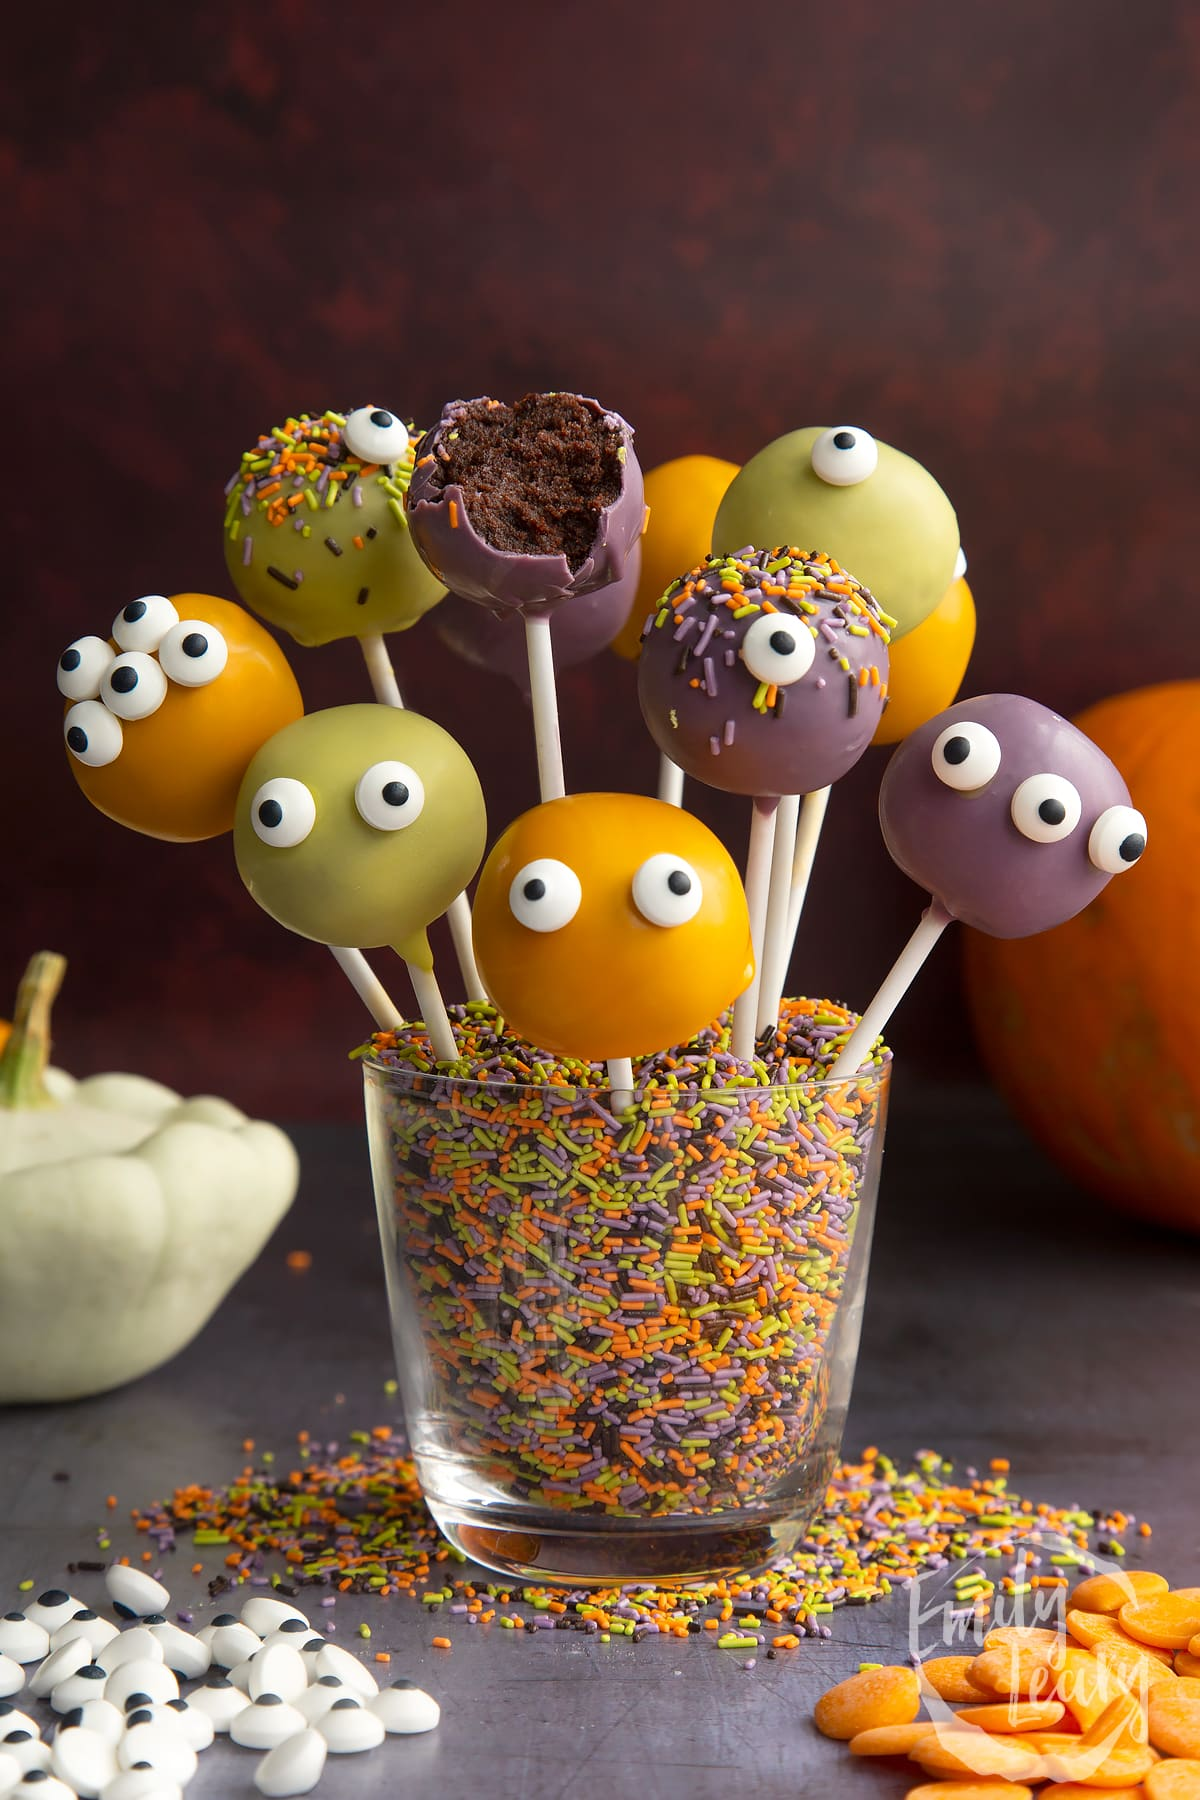 Halloween cake pops standing in a glass filled with Halloween sprinkles. One has been bitten open.